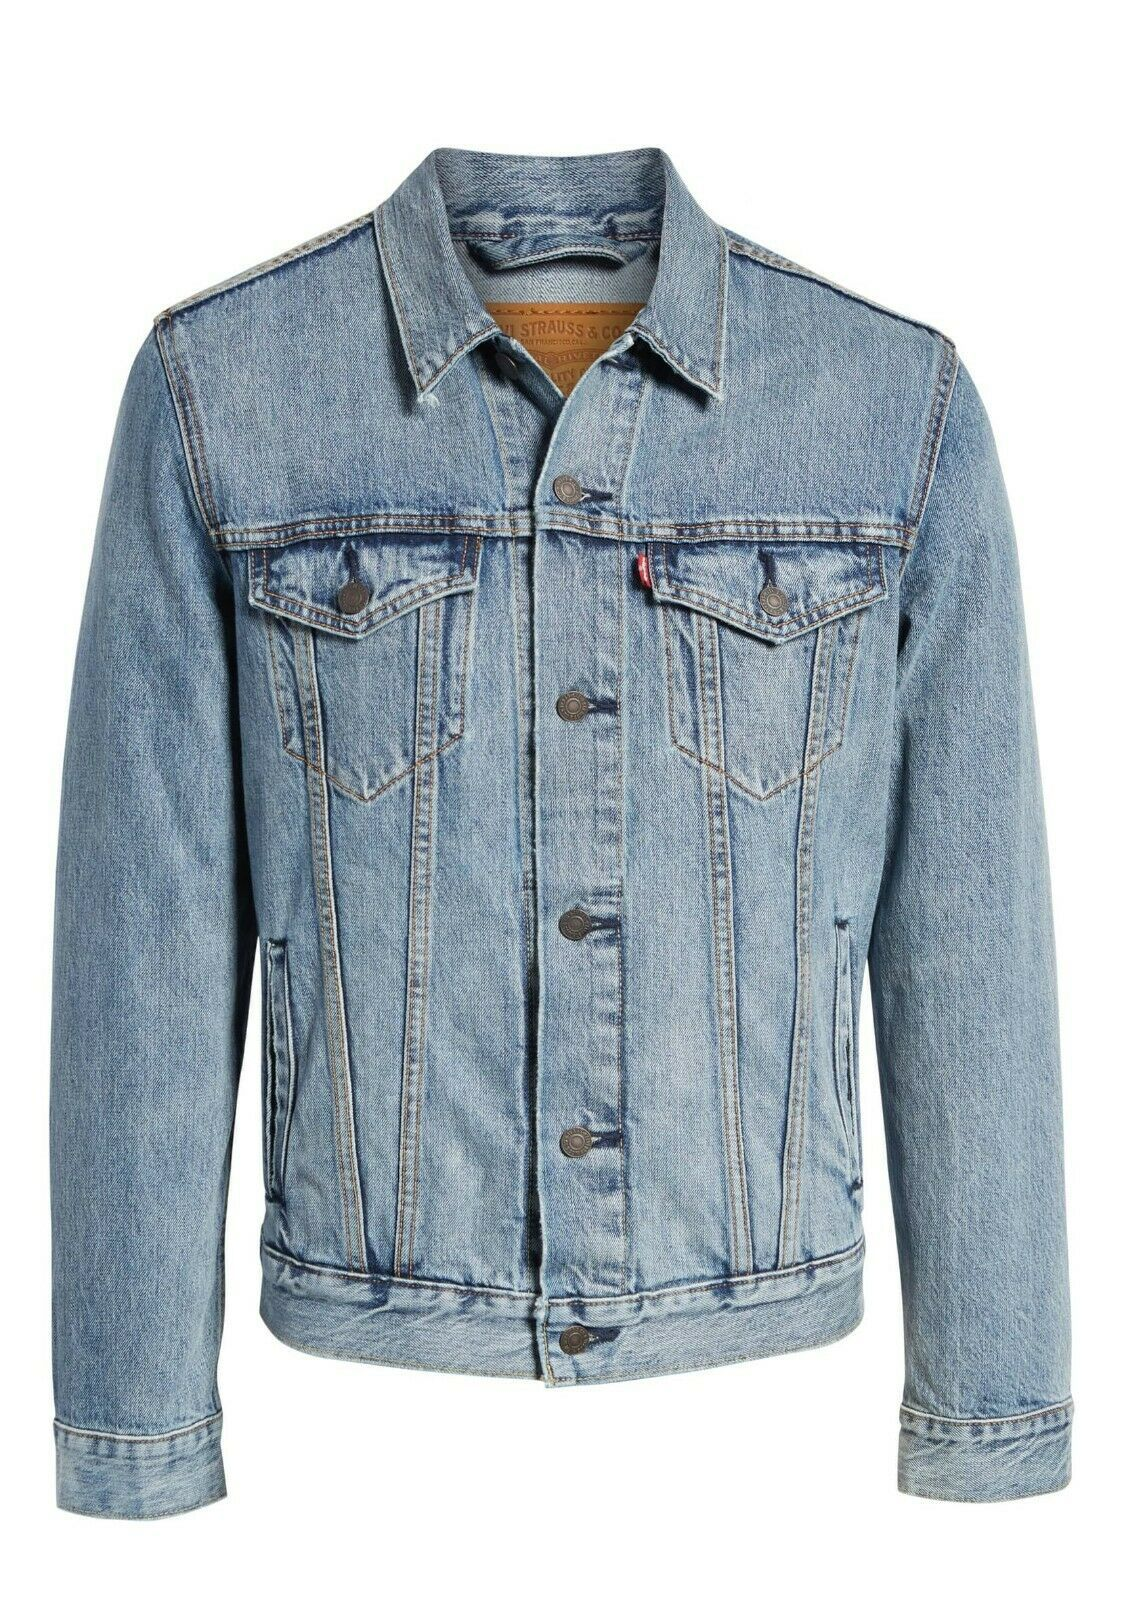 Levi's Men's Cotton Button Up Denim Jeans Trucker Jacket Light Blue 723340232